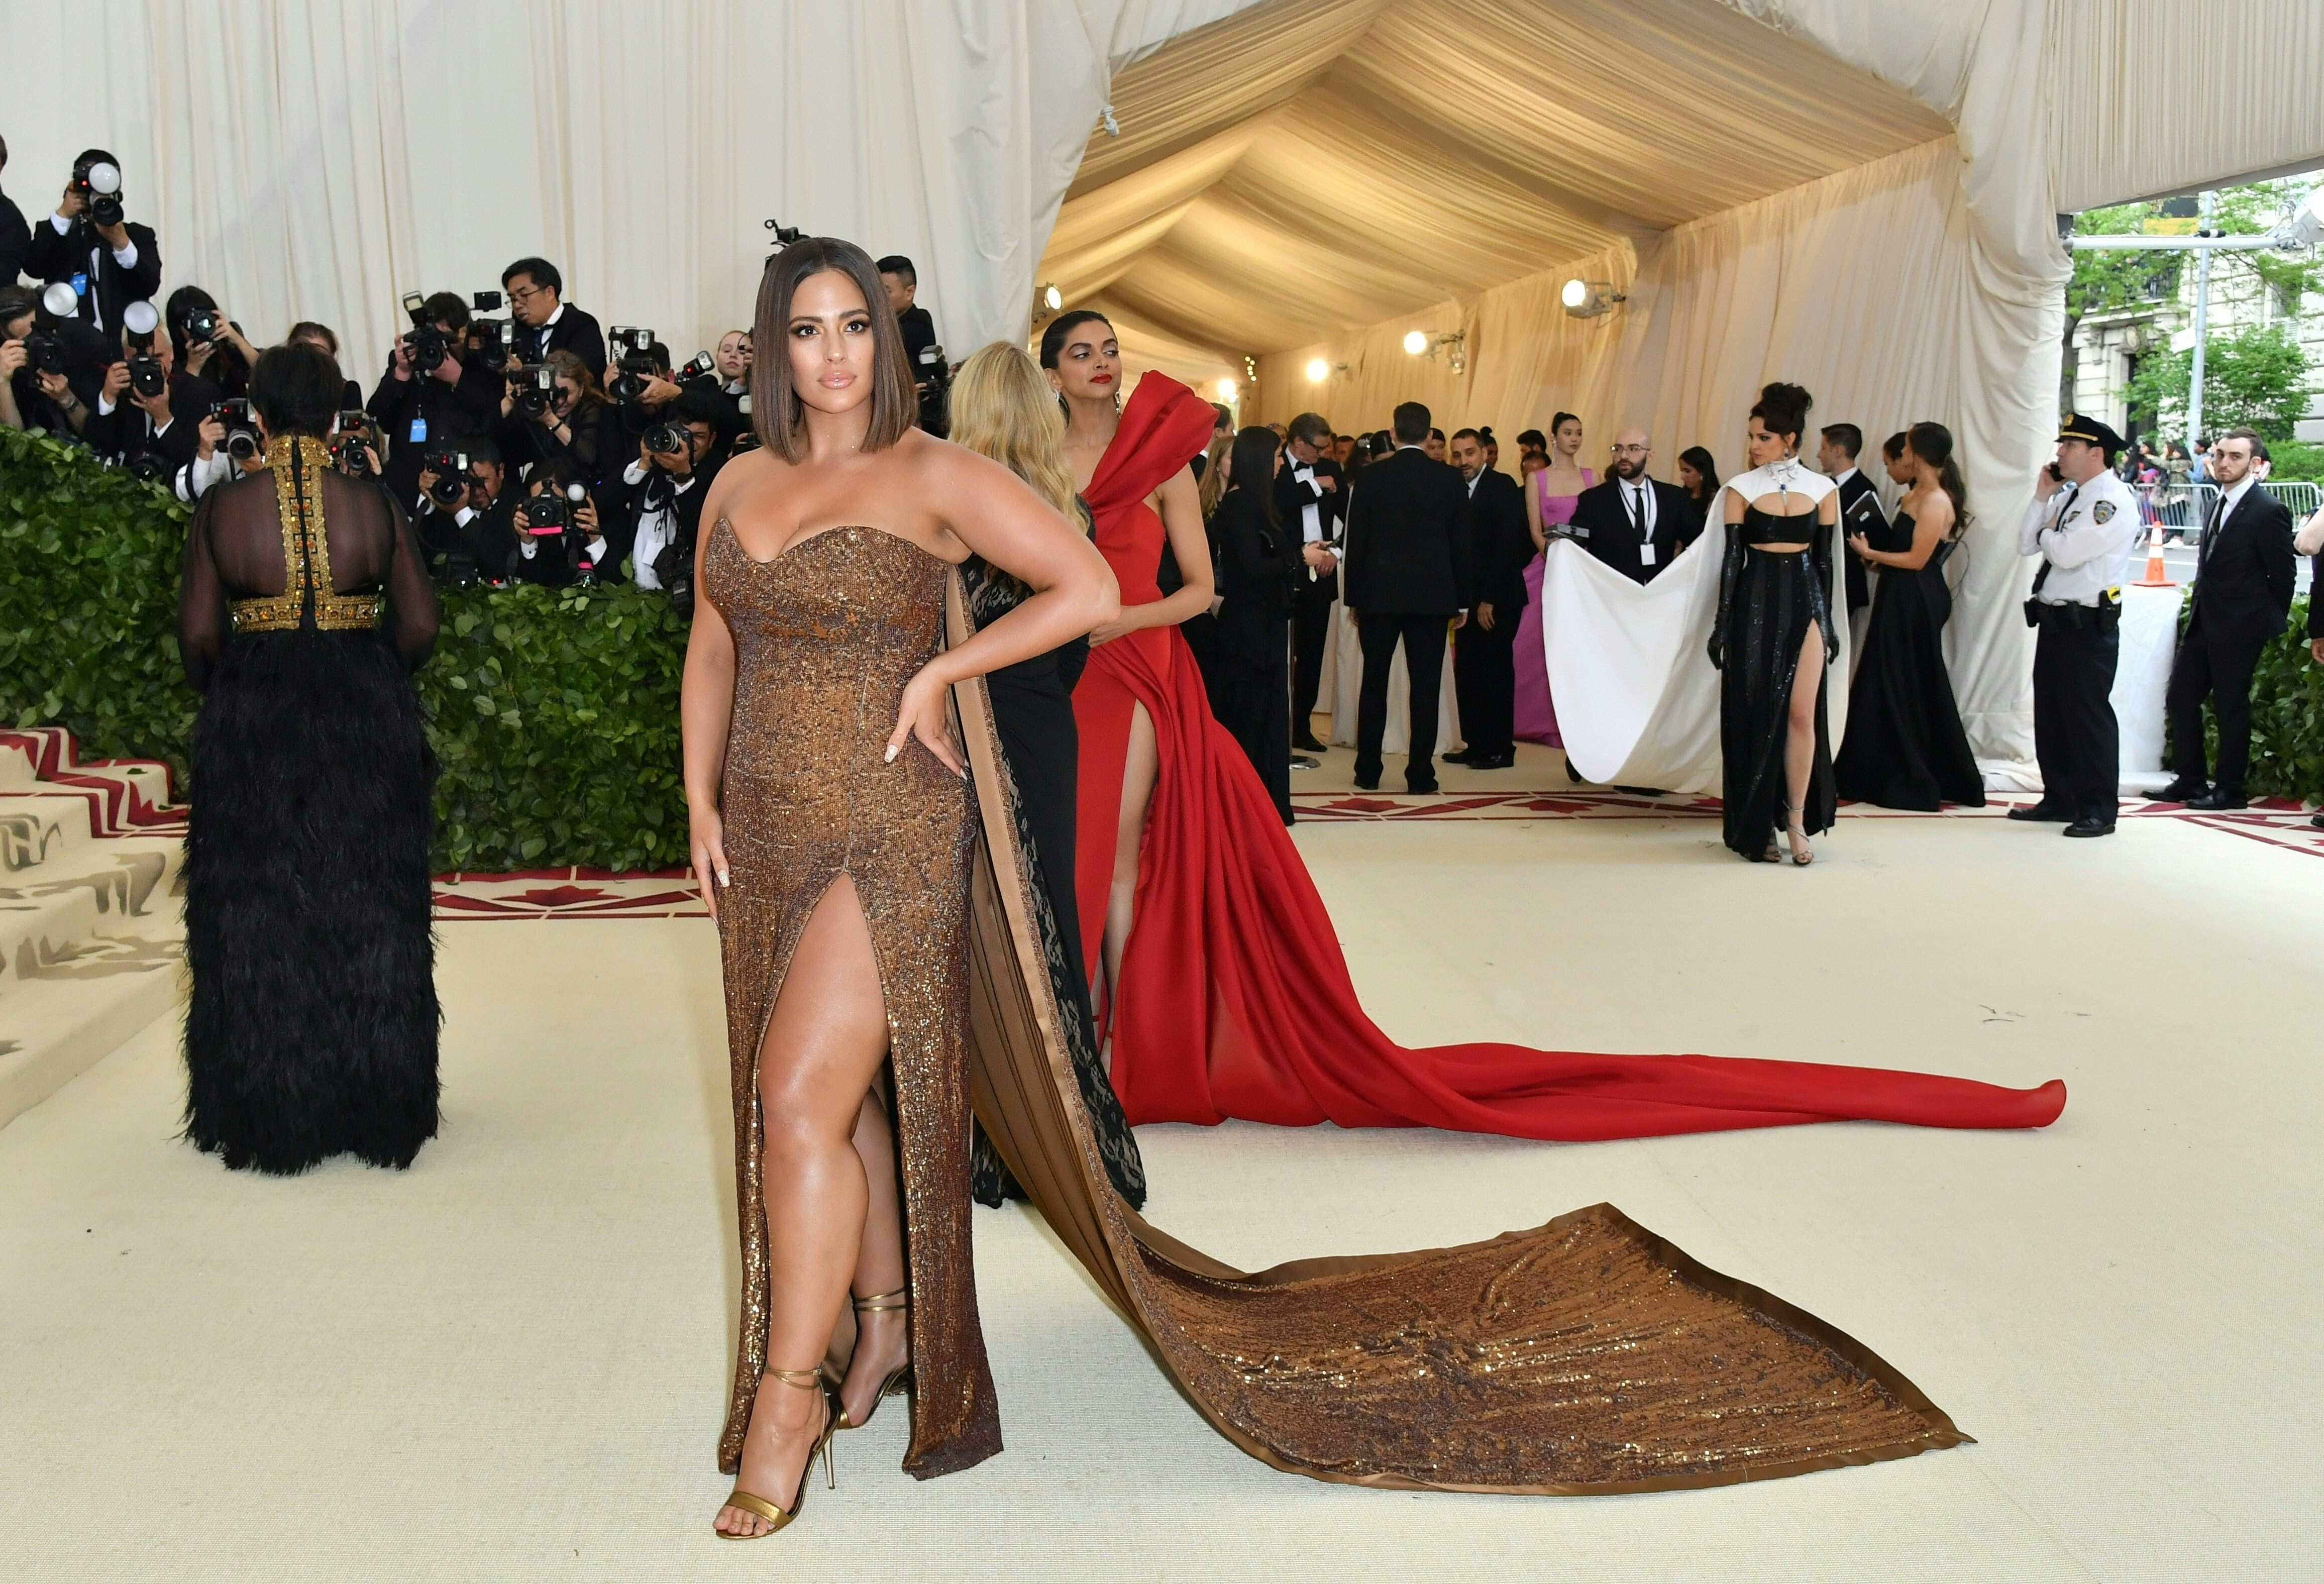 d3a5e78f4cf Ashley Graham and 6 other plus-size models who paved the way - CNN Style